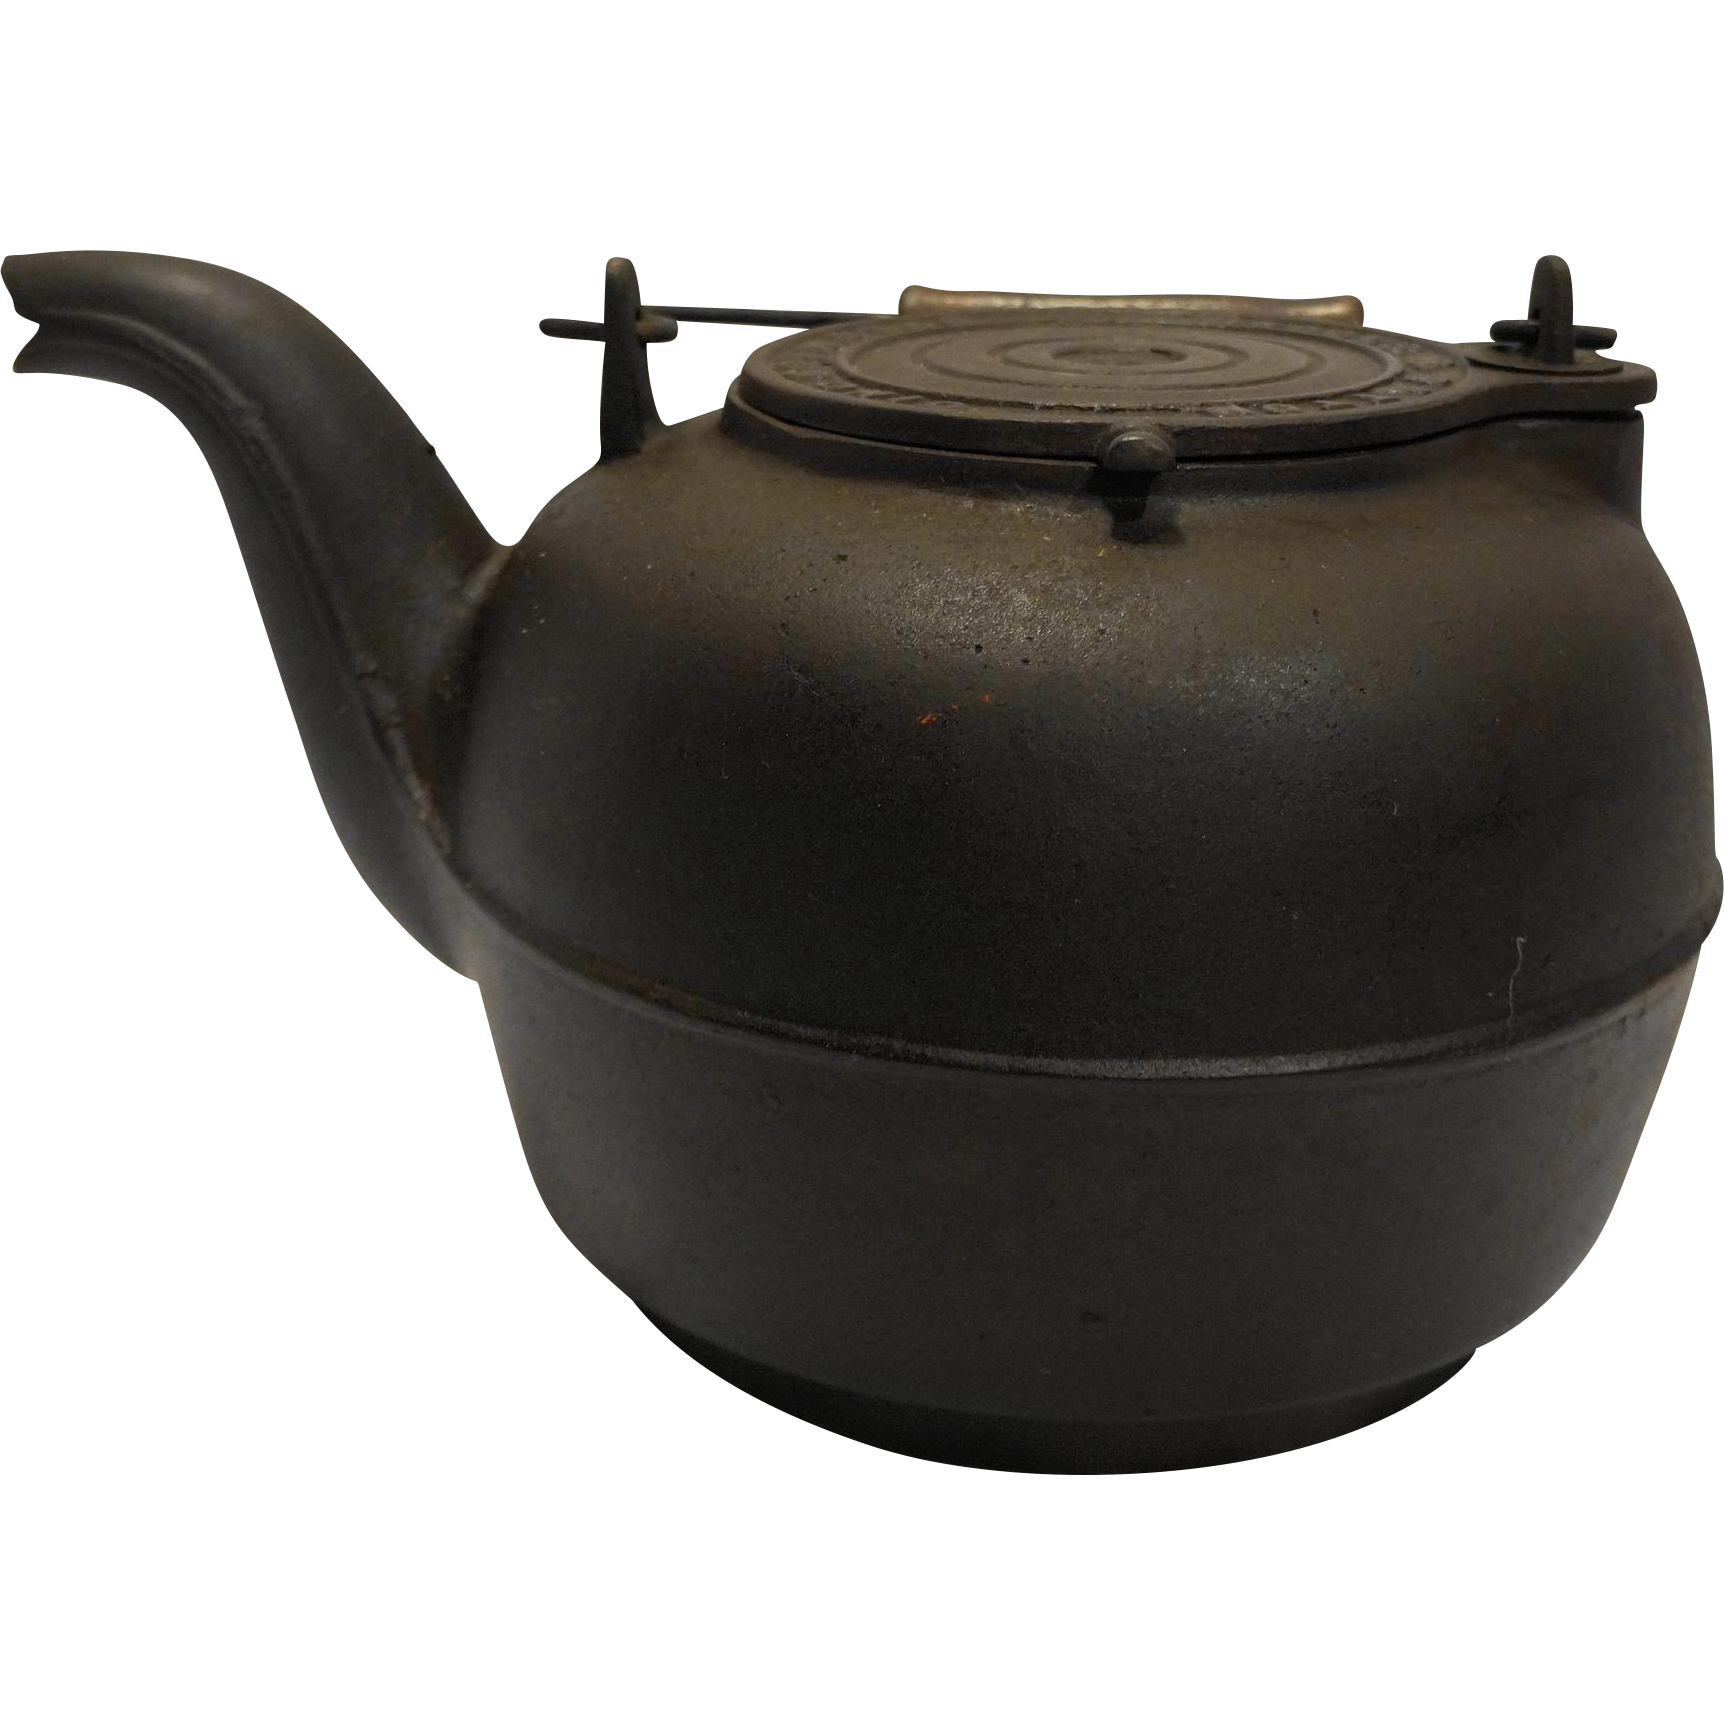 Brooks Patton Columbus Ohio Cast Iron Kettle Large Late 1880s